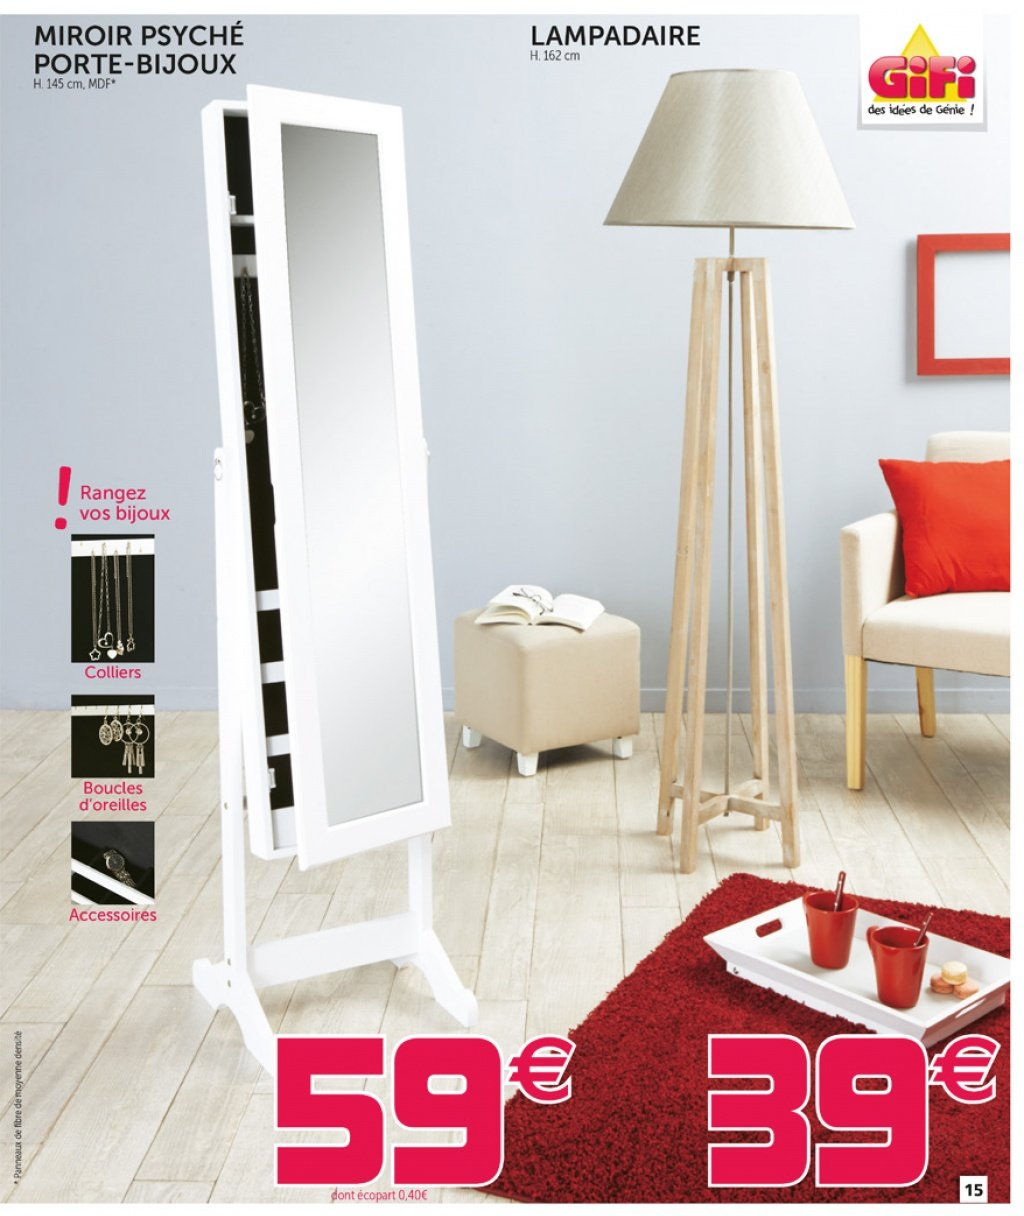 Psych miroir gifi id es de d coration int rieure for Des idees de decoration interieure